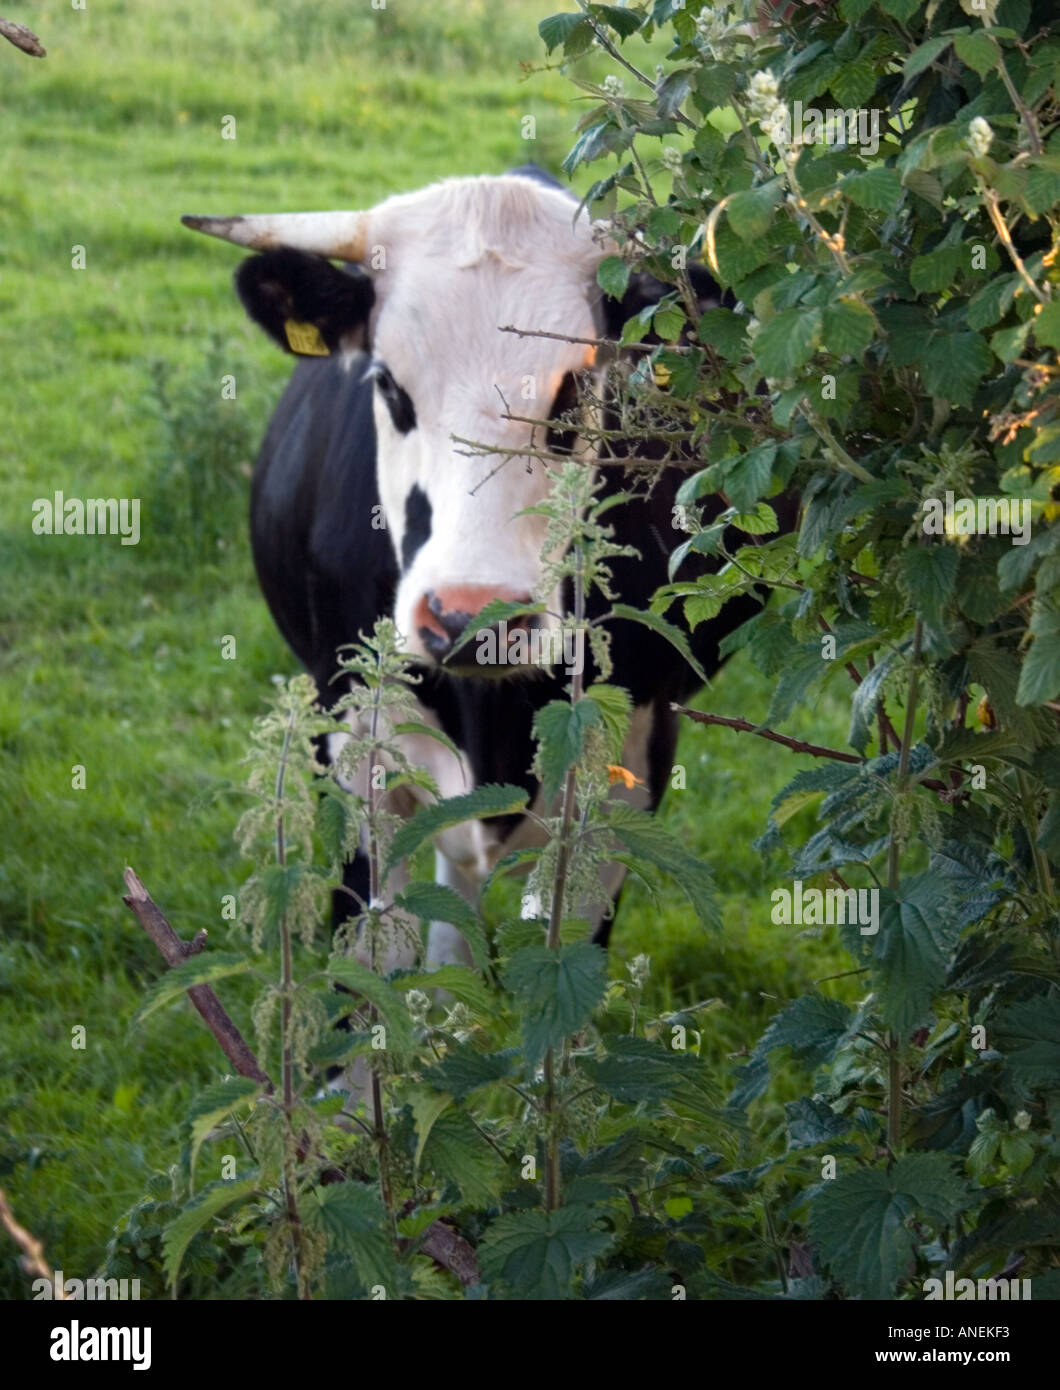 black and white cow hiding behind a hedge ireland stock photo